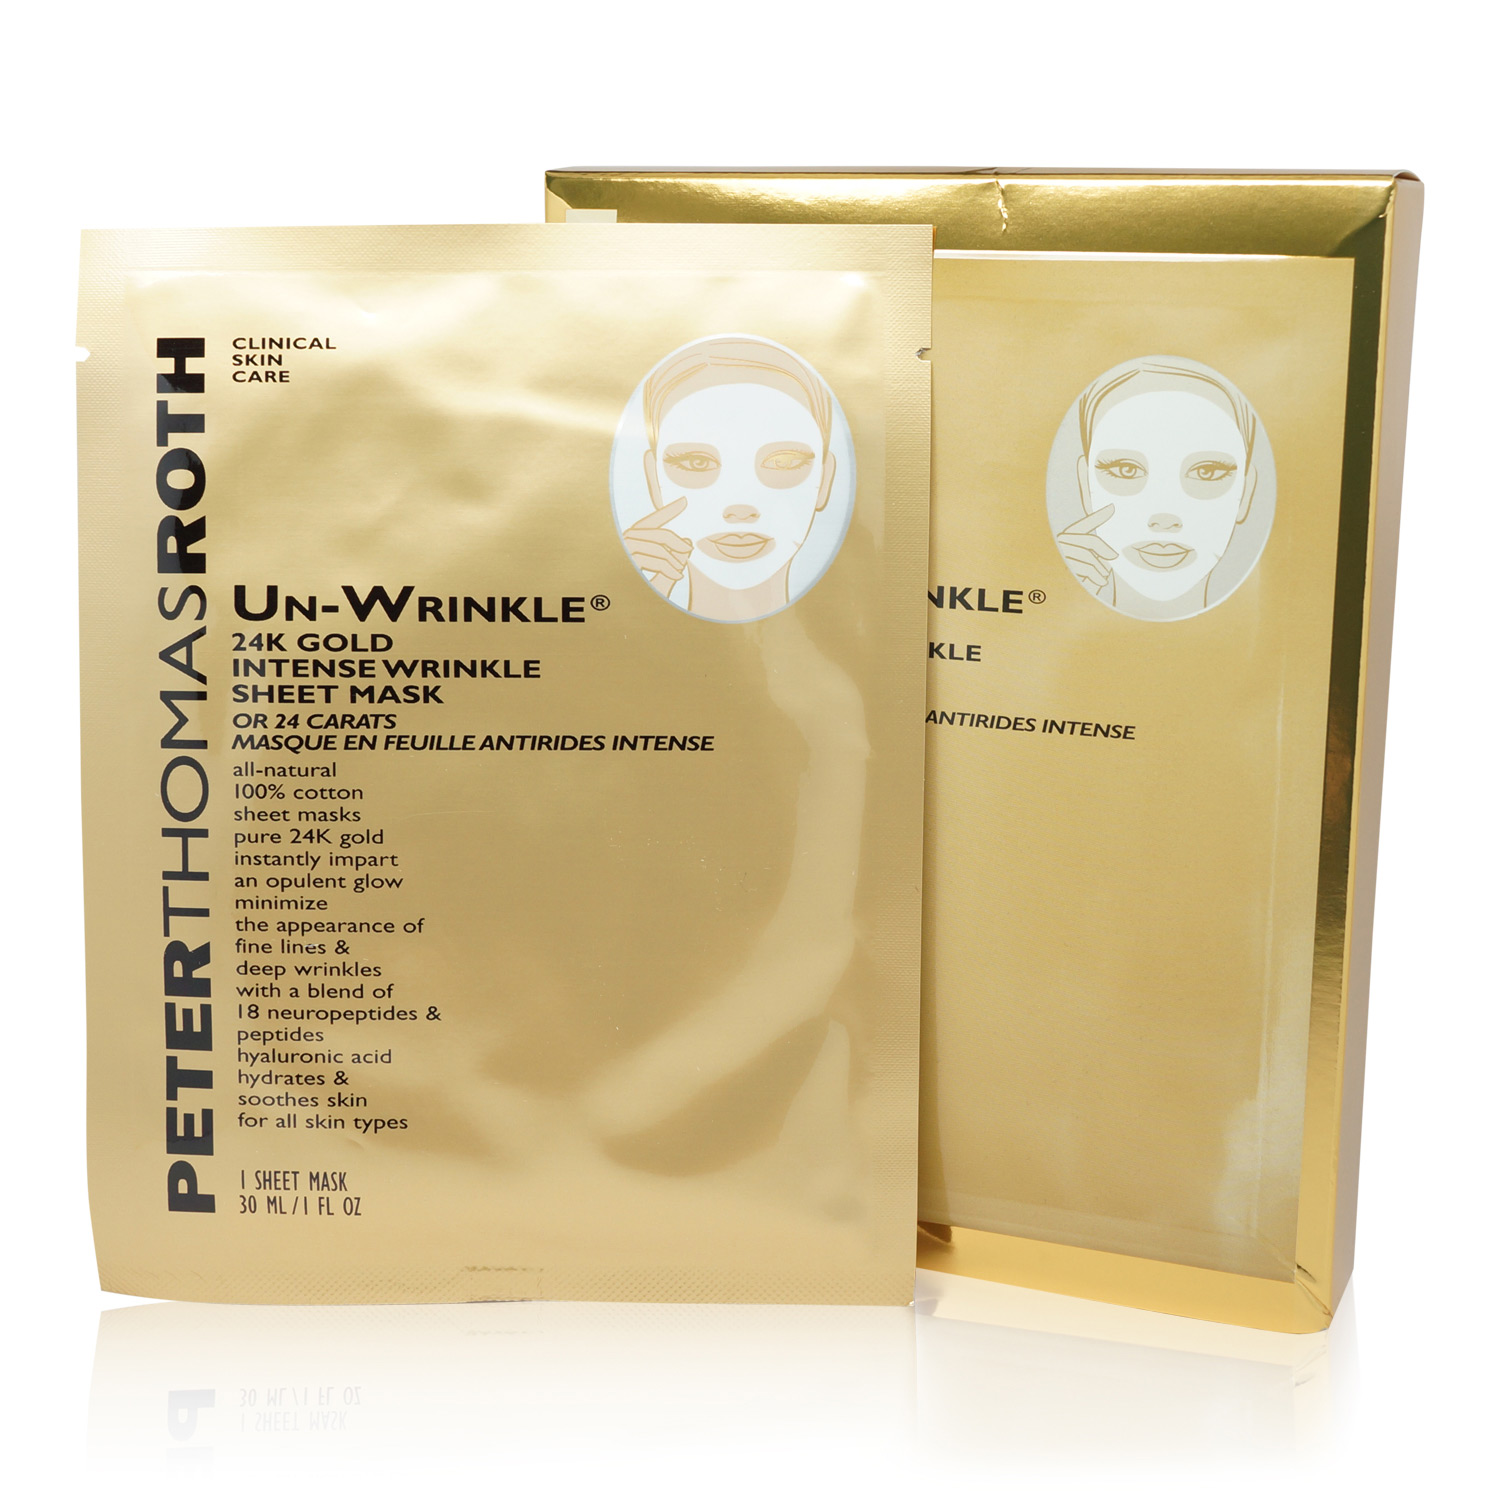 Peter Thomas Roth Un-Wrinkle 24K Gold Intense Wrinkle Sheet Mask - 6 Sheets